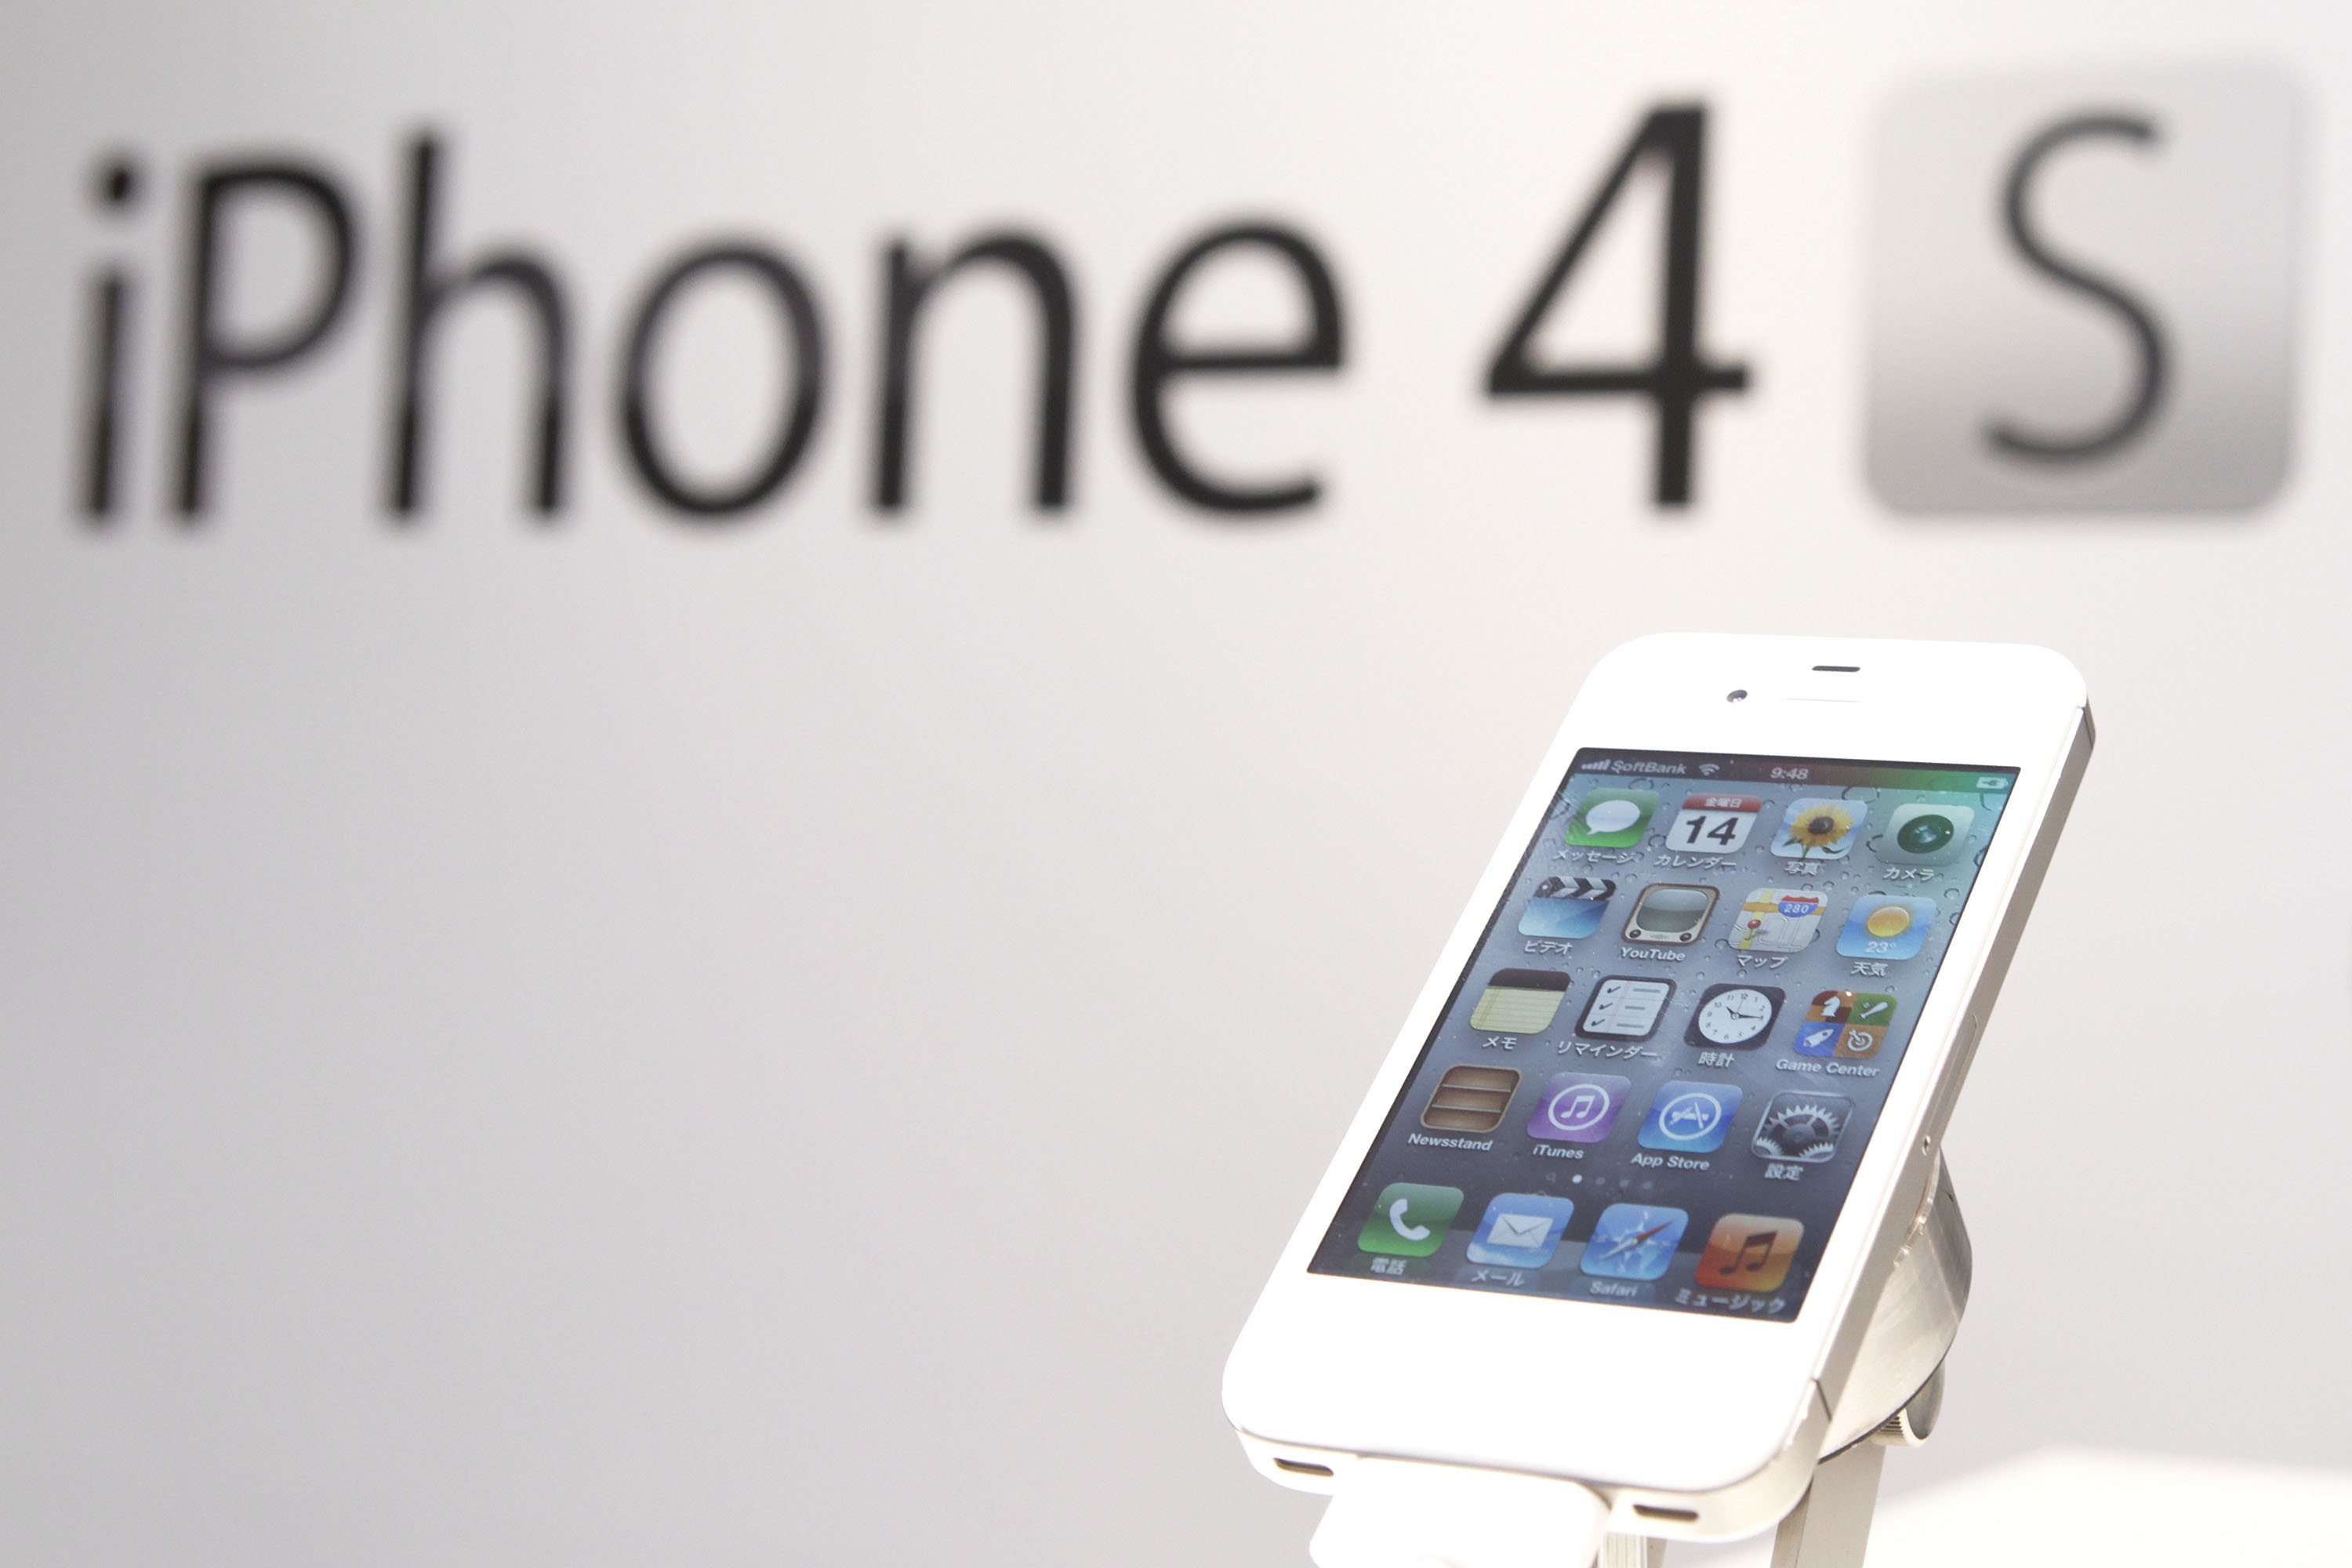 Just in: Apple Inc.'s iPhone 4S smartphone is displayed at SoftBank Corp.'s flagship store in Tokyo on Friday after the new handset went on sale. | BLOOMBERG PHOTO